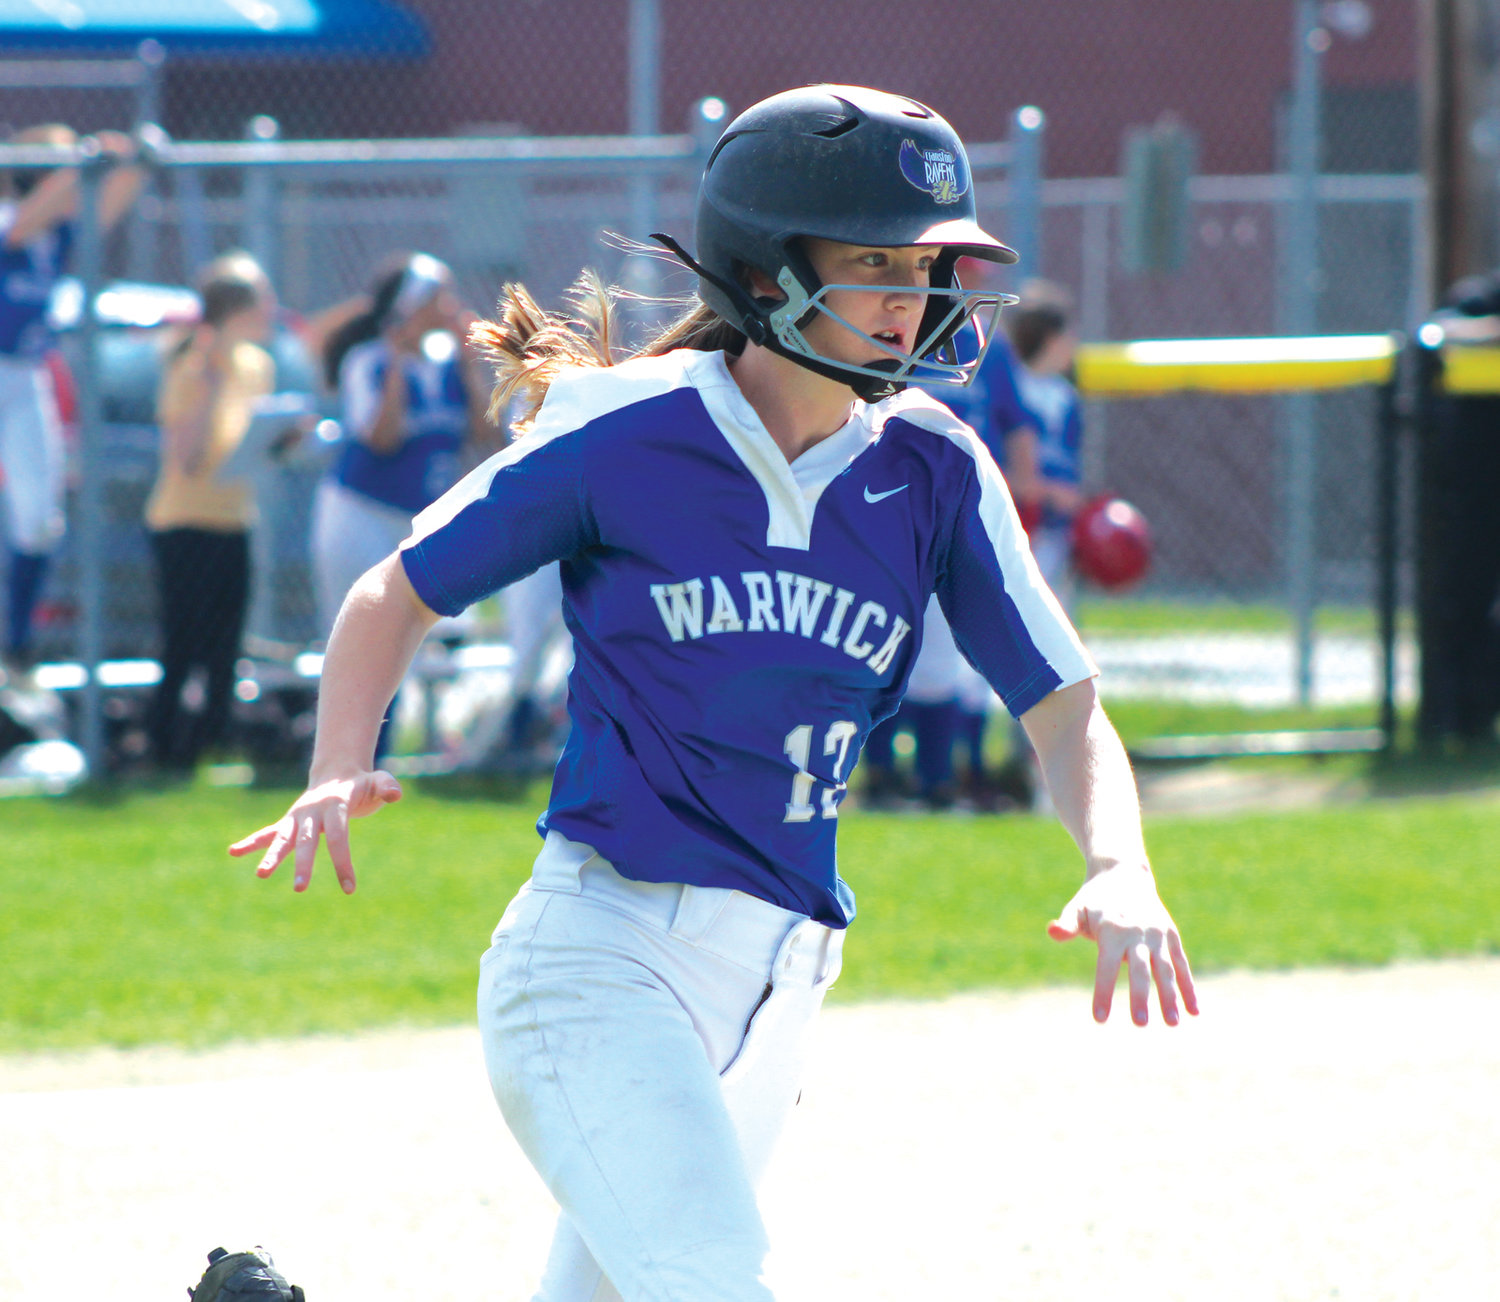 THE PERFECT SEASON: Warwick Vets' Gillian Brown rounds first base after picking up a hit against Park View during the team's regular season finale at Vets.